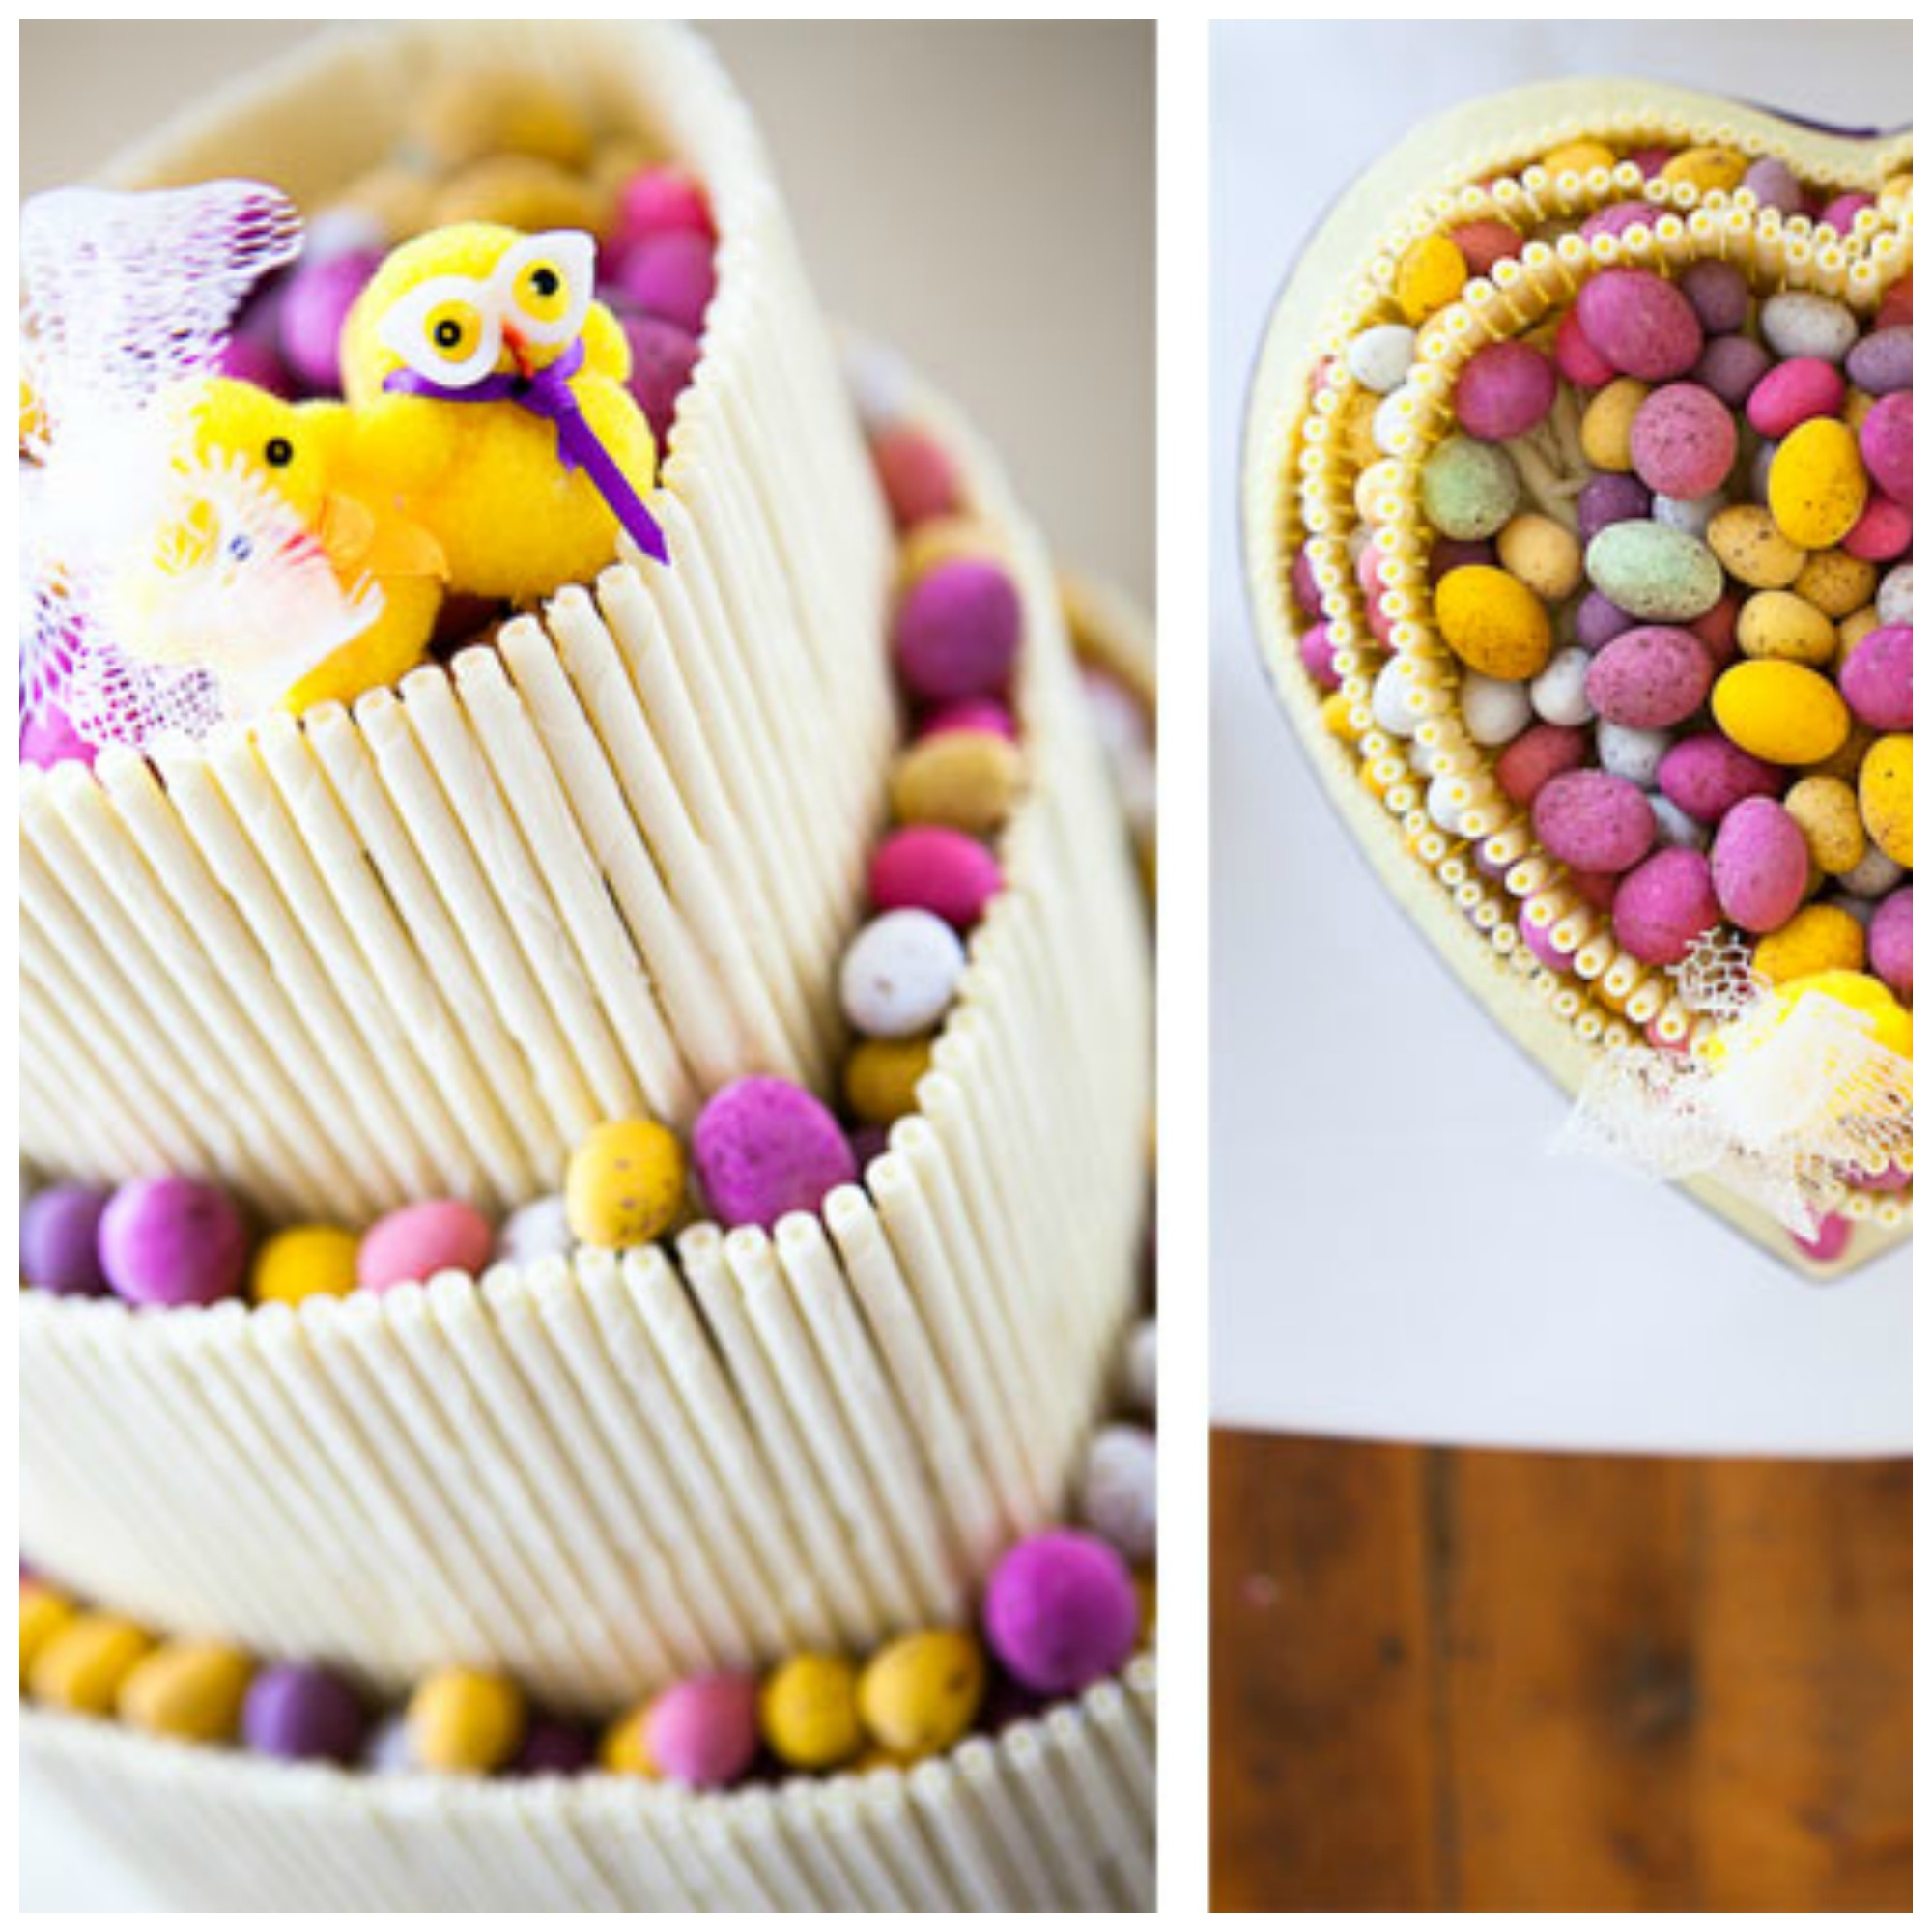 Five Designs To Consider For Your Perfect Easter Wedding Cake